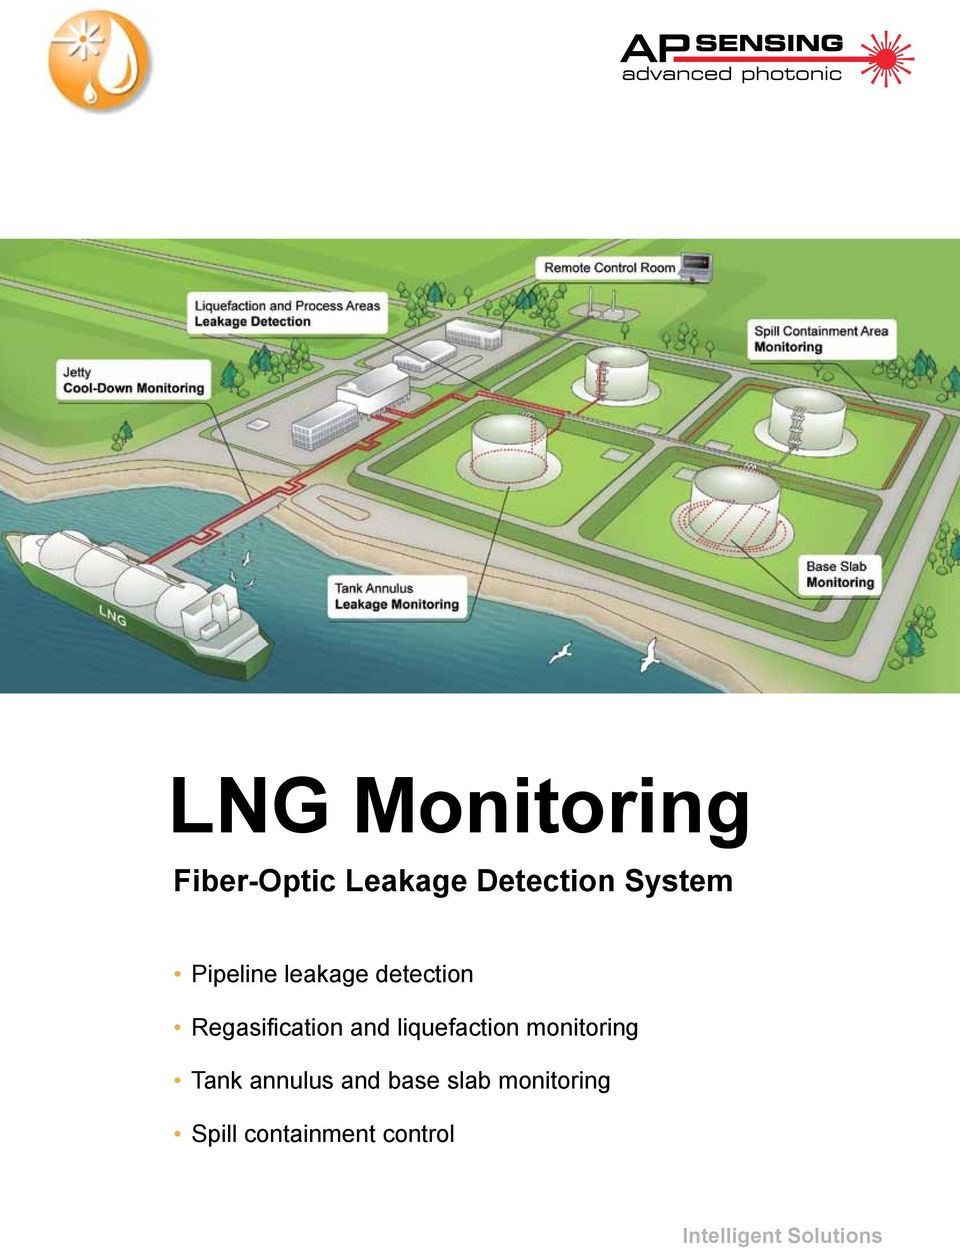 liquefaction monitoring Tank annulus and base slab